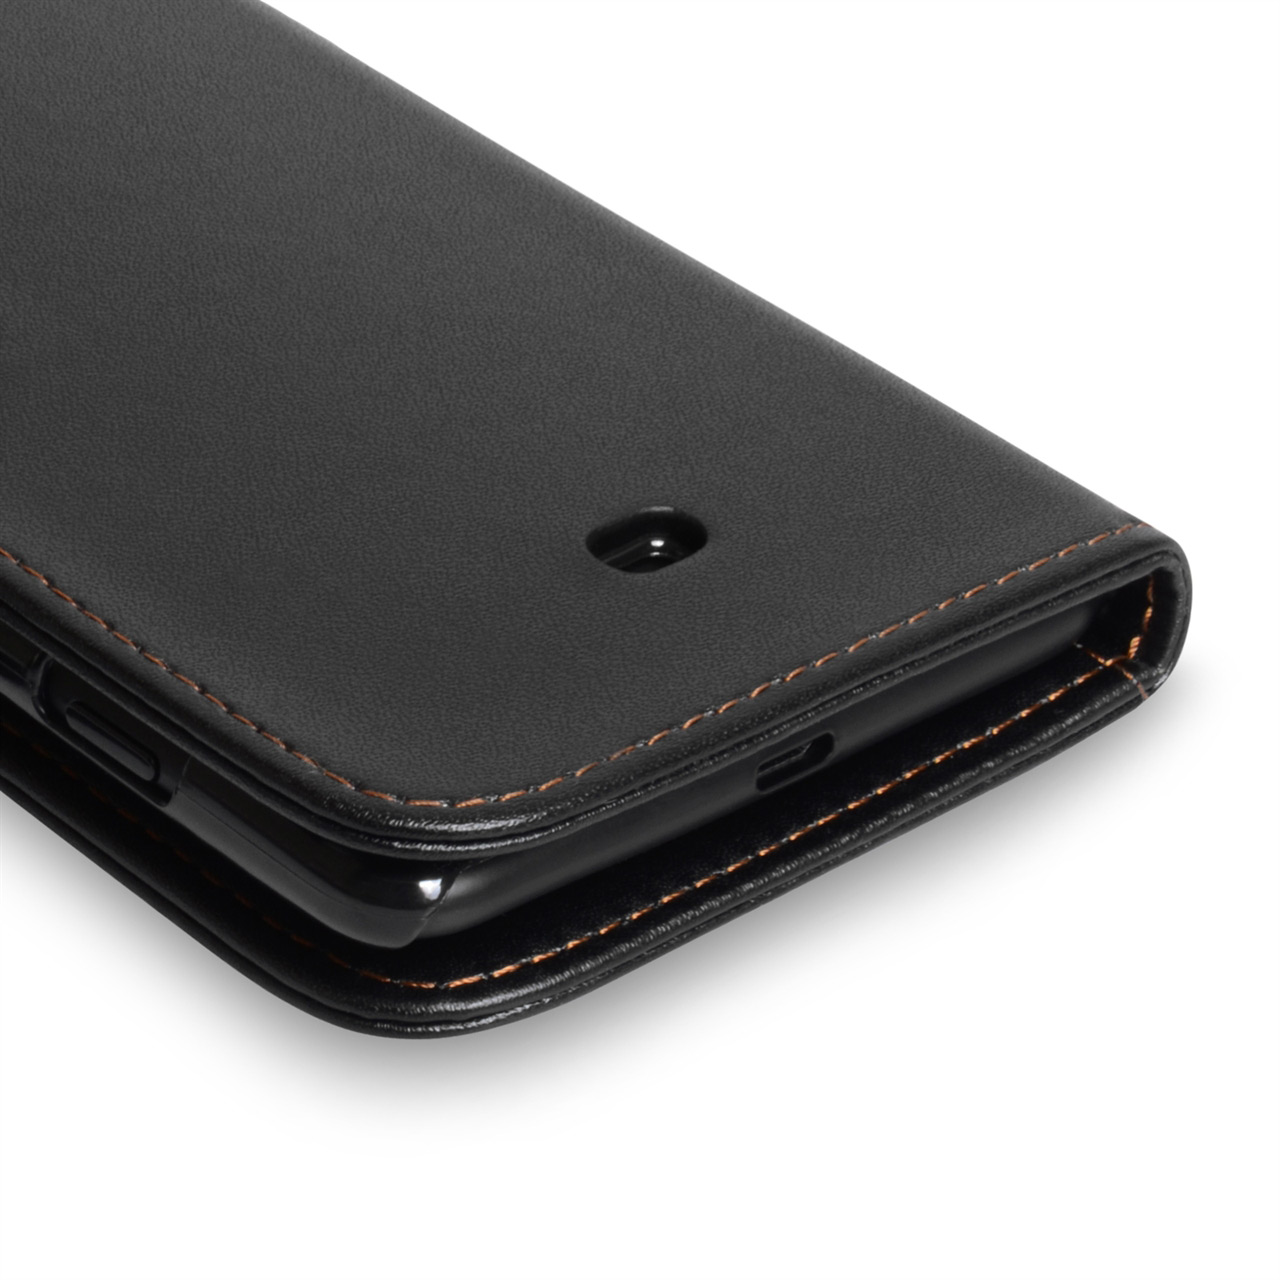 YouSave Accessories Nokia Lumia 625 Leather Effect Wallet Case - Black